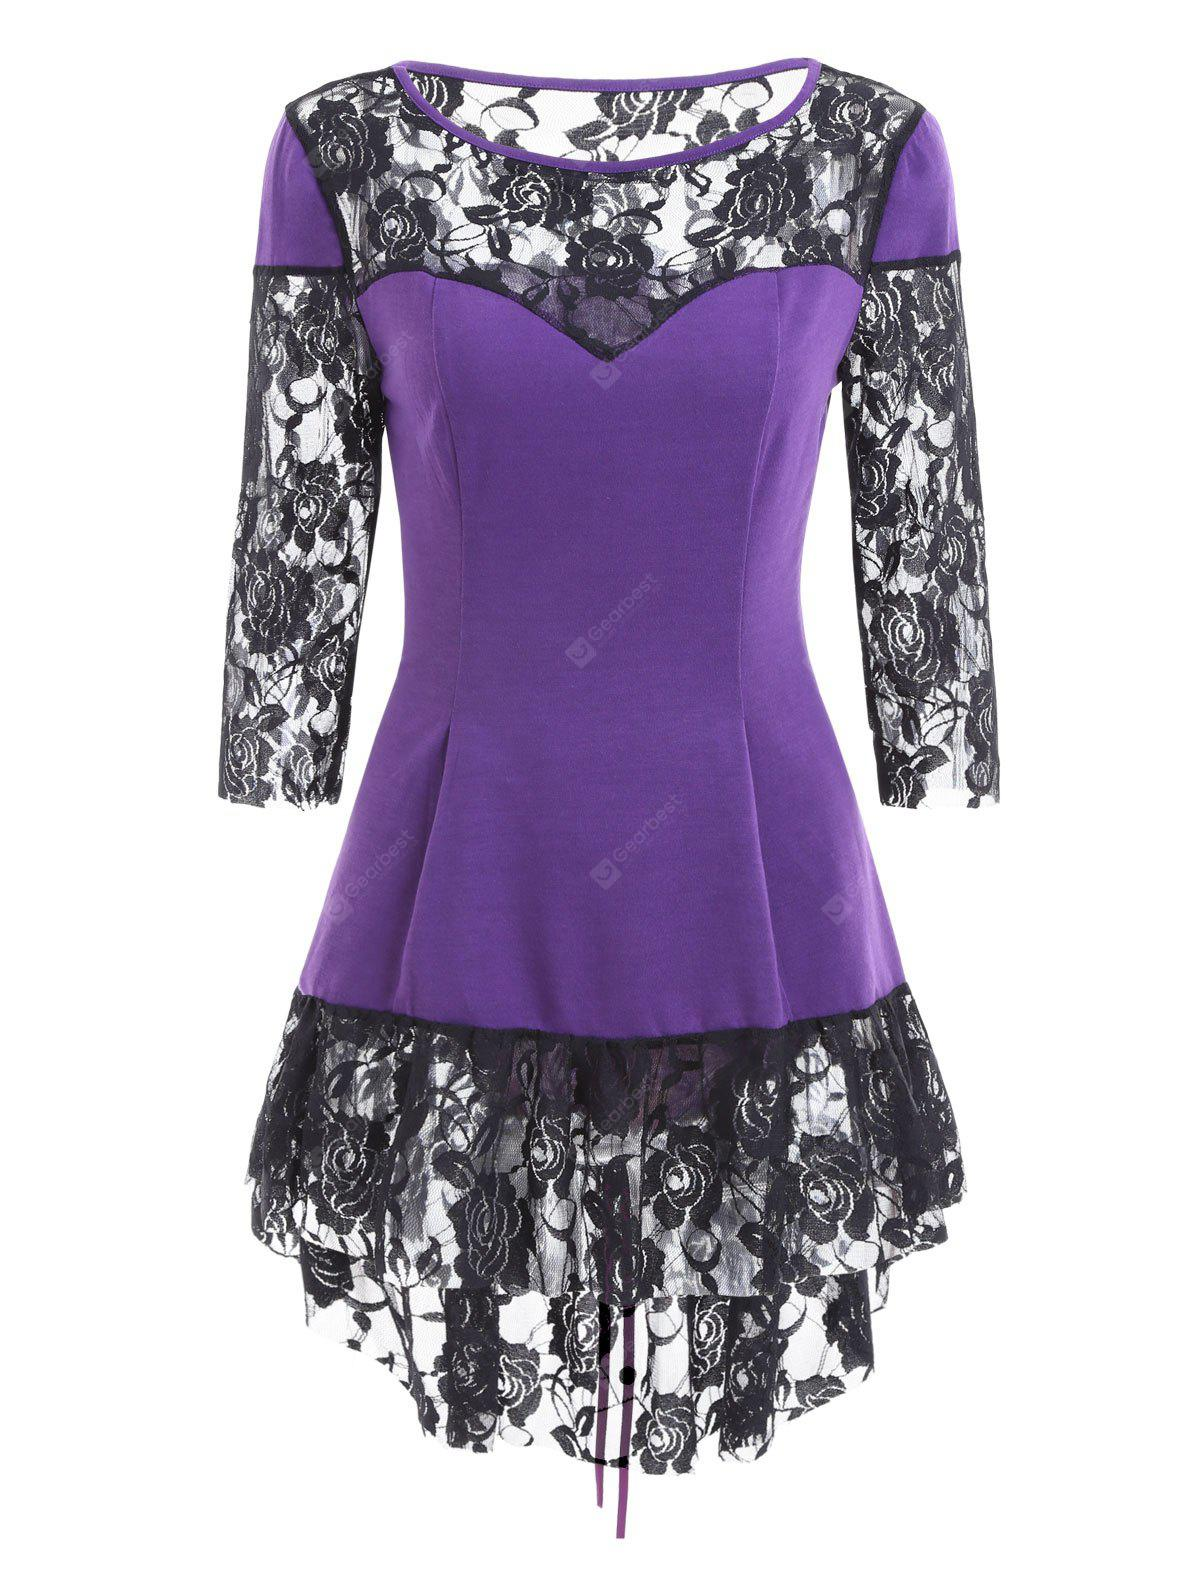 Dentelle Insert Lace Up High Low Blouse